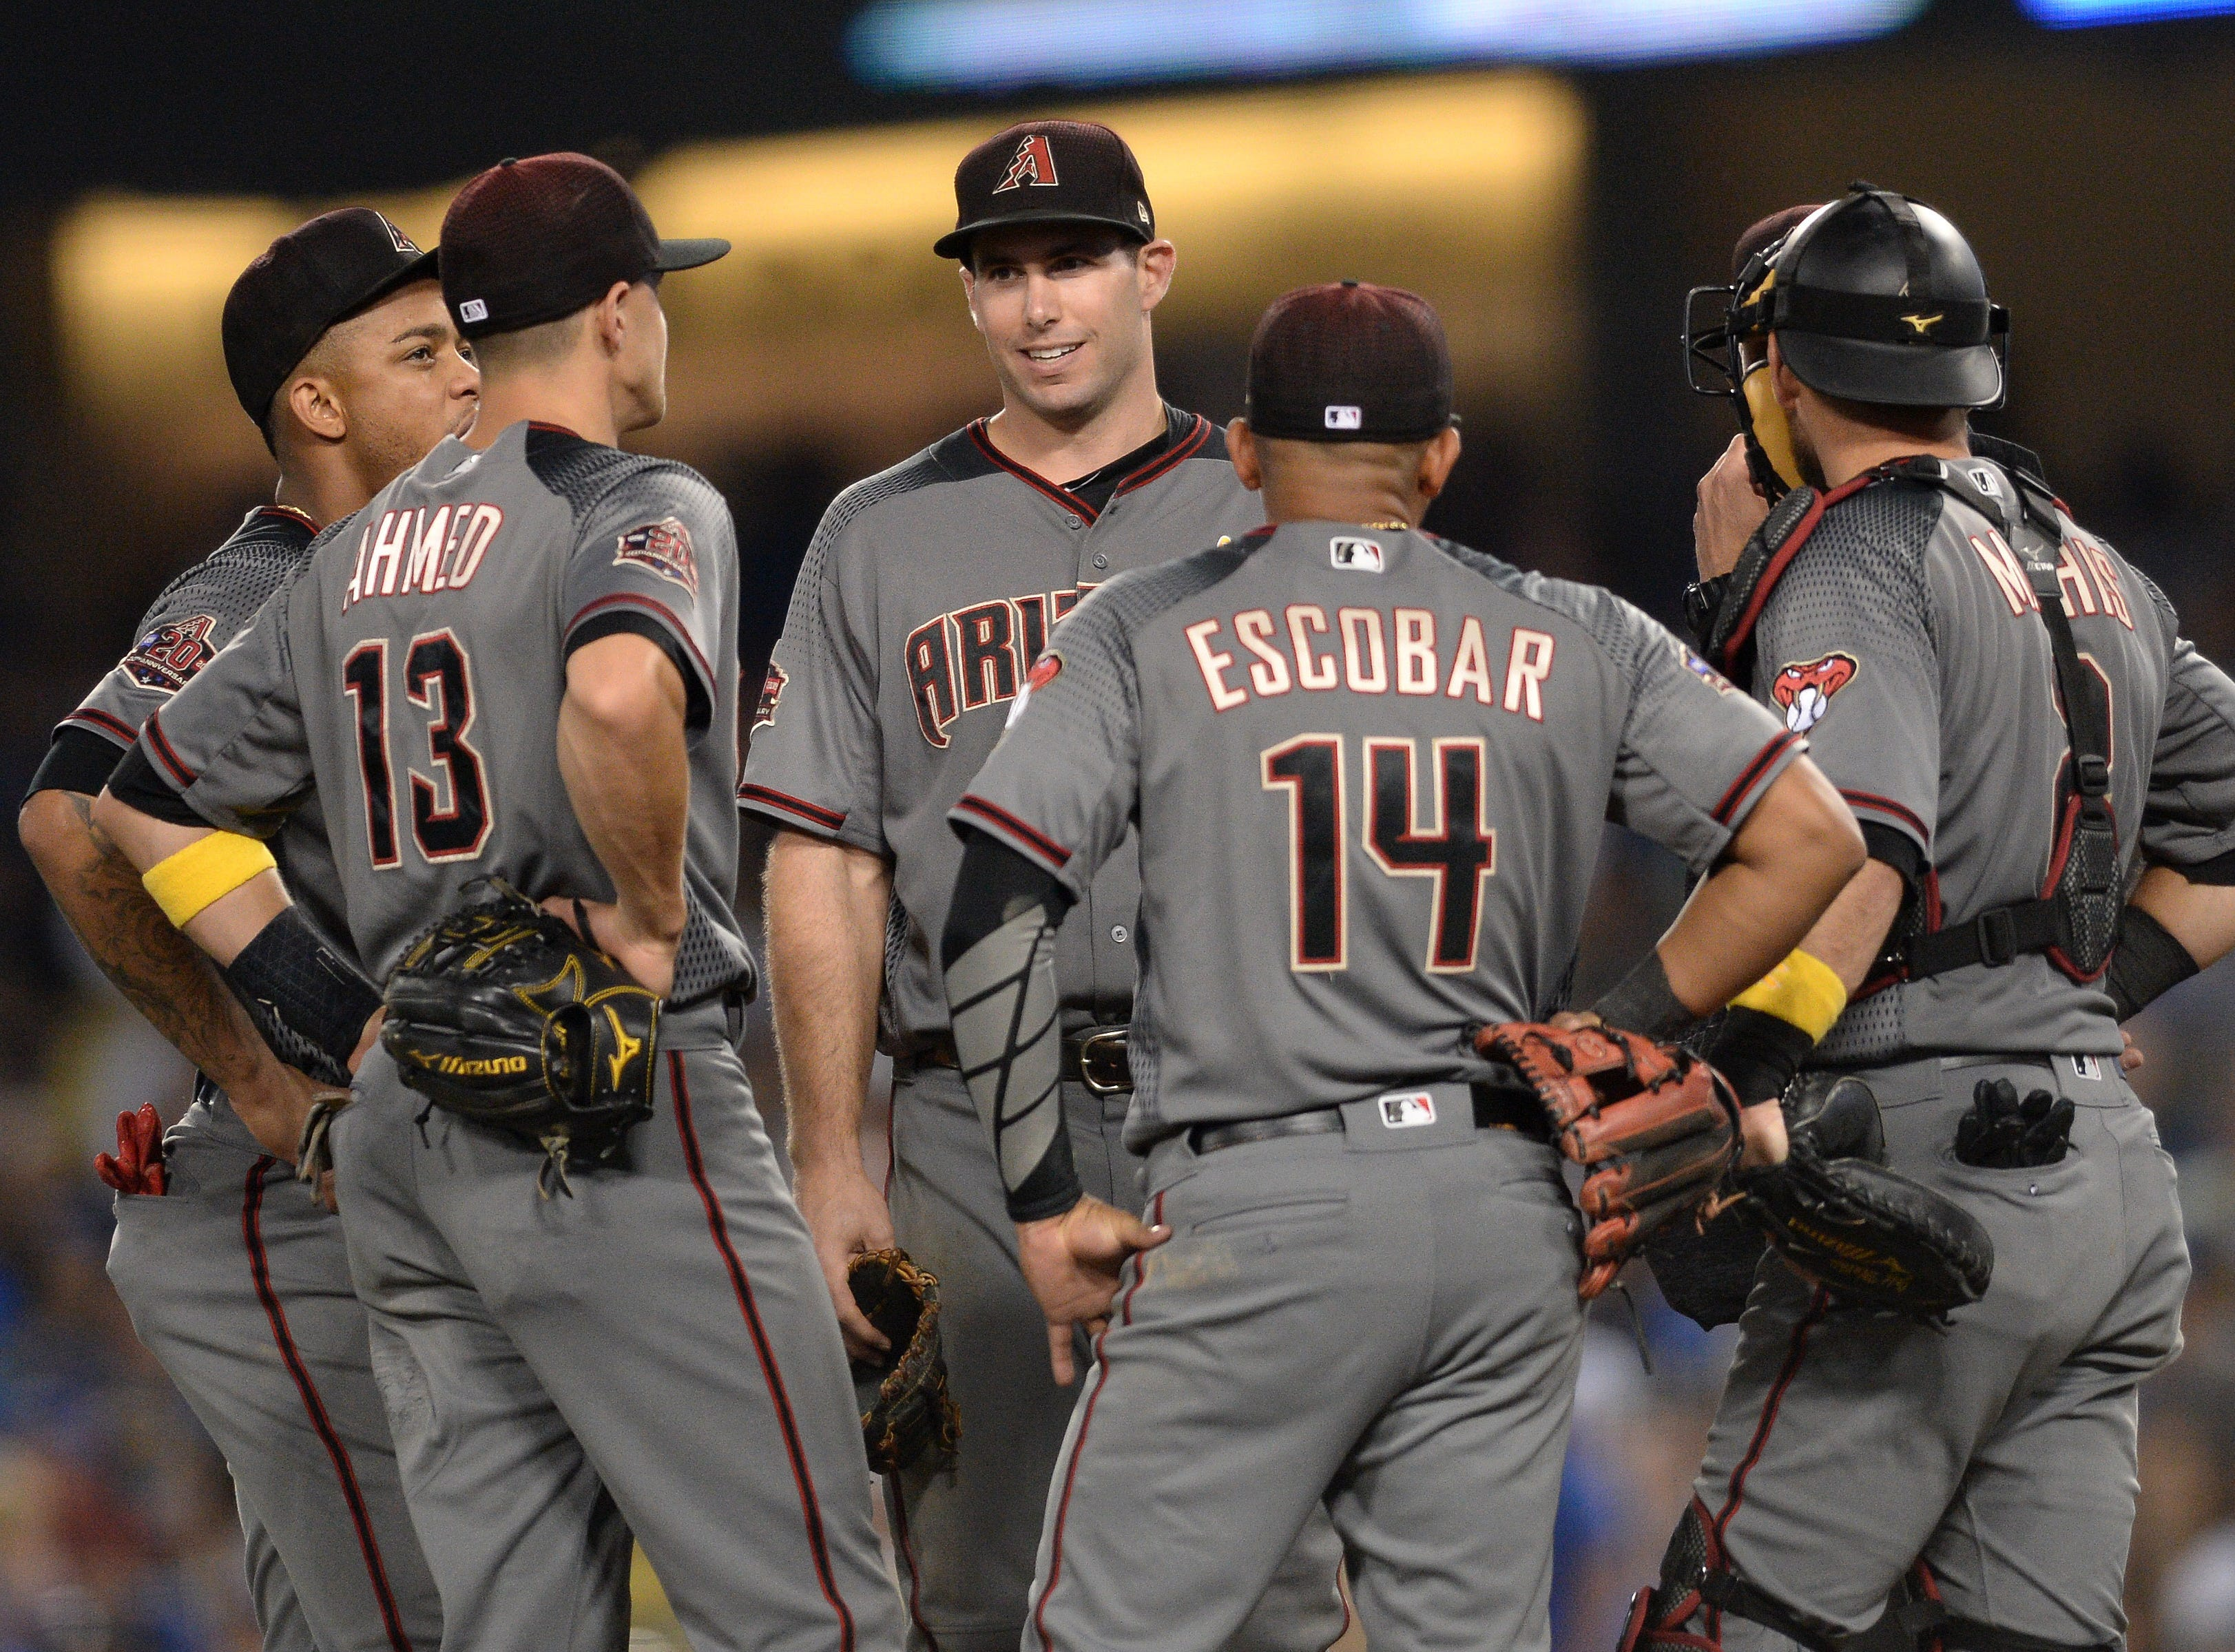 Sep 1, 2018; Los Angeles, CA, USA; Arizona Diamondbacks players meet at the mound during a pitching change during the seventh inning against the Arizona Diamondbacks at Dodger Stadium.